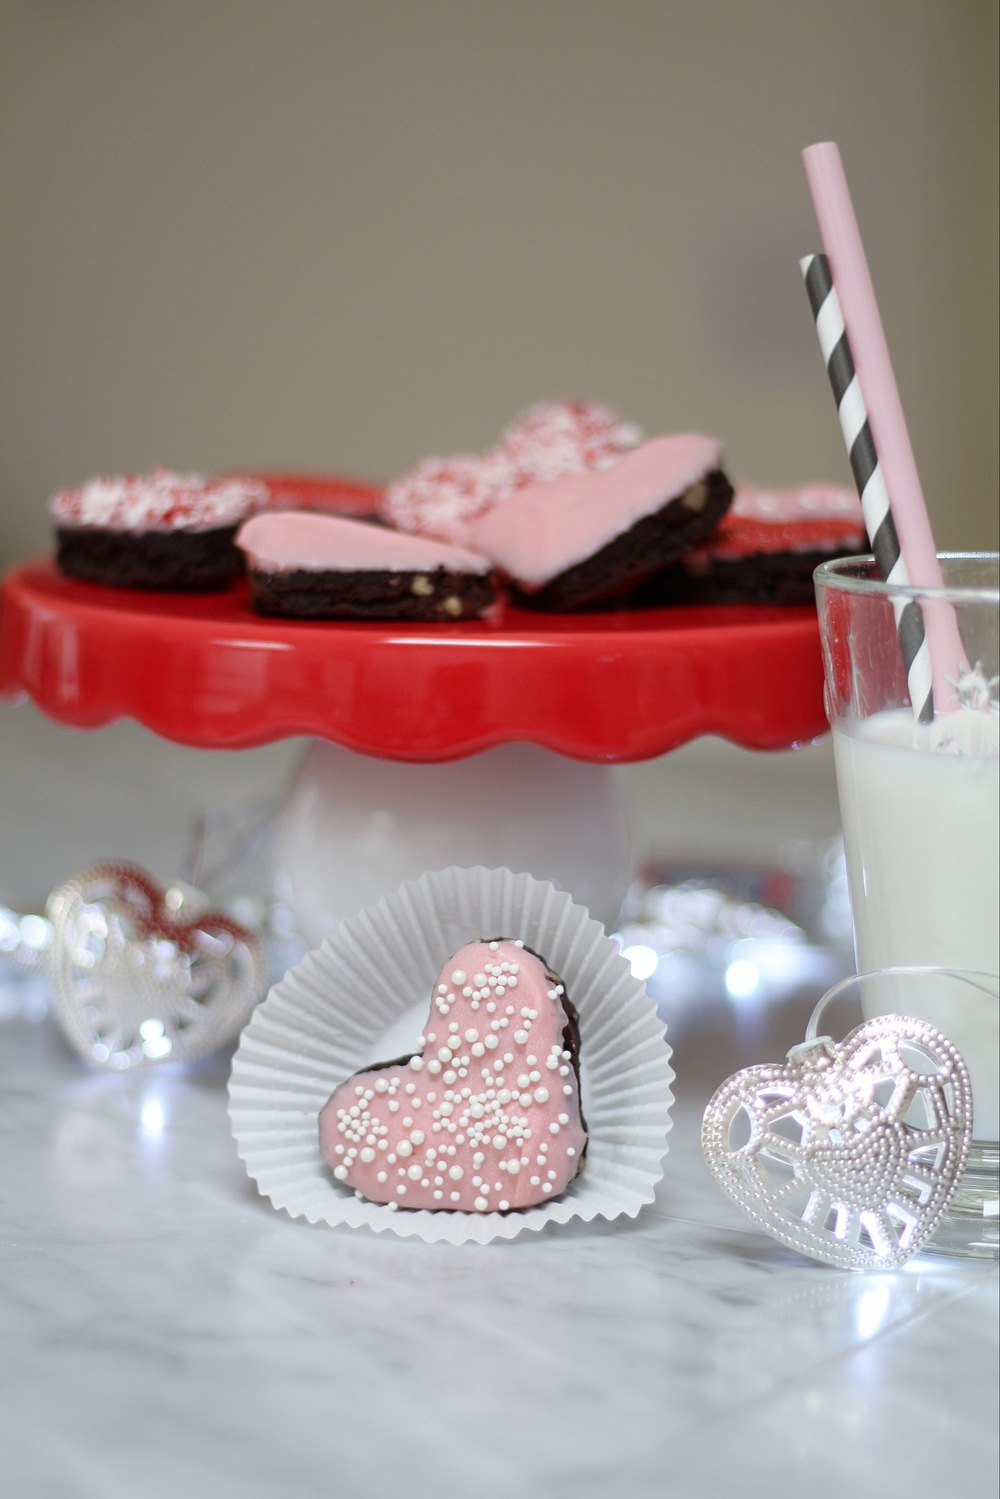 DIY Miniature Brownie Bites for Valentine's Day - great for kids!